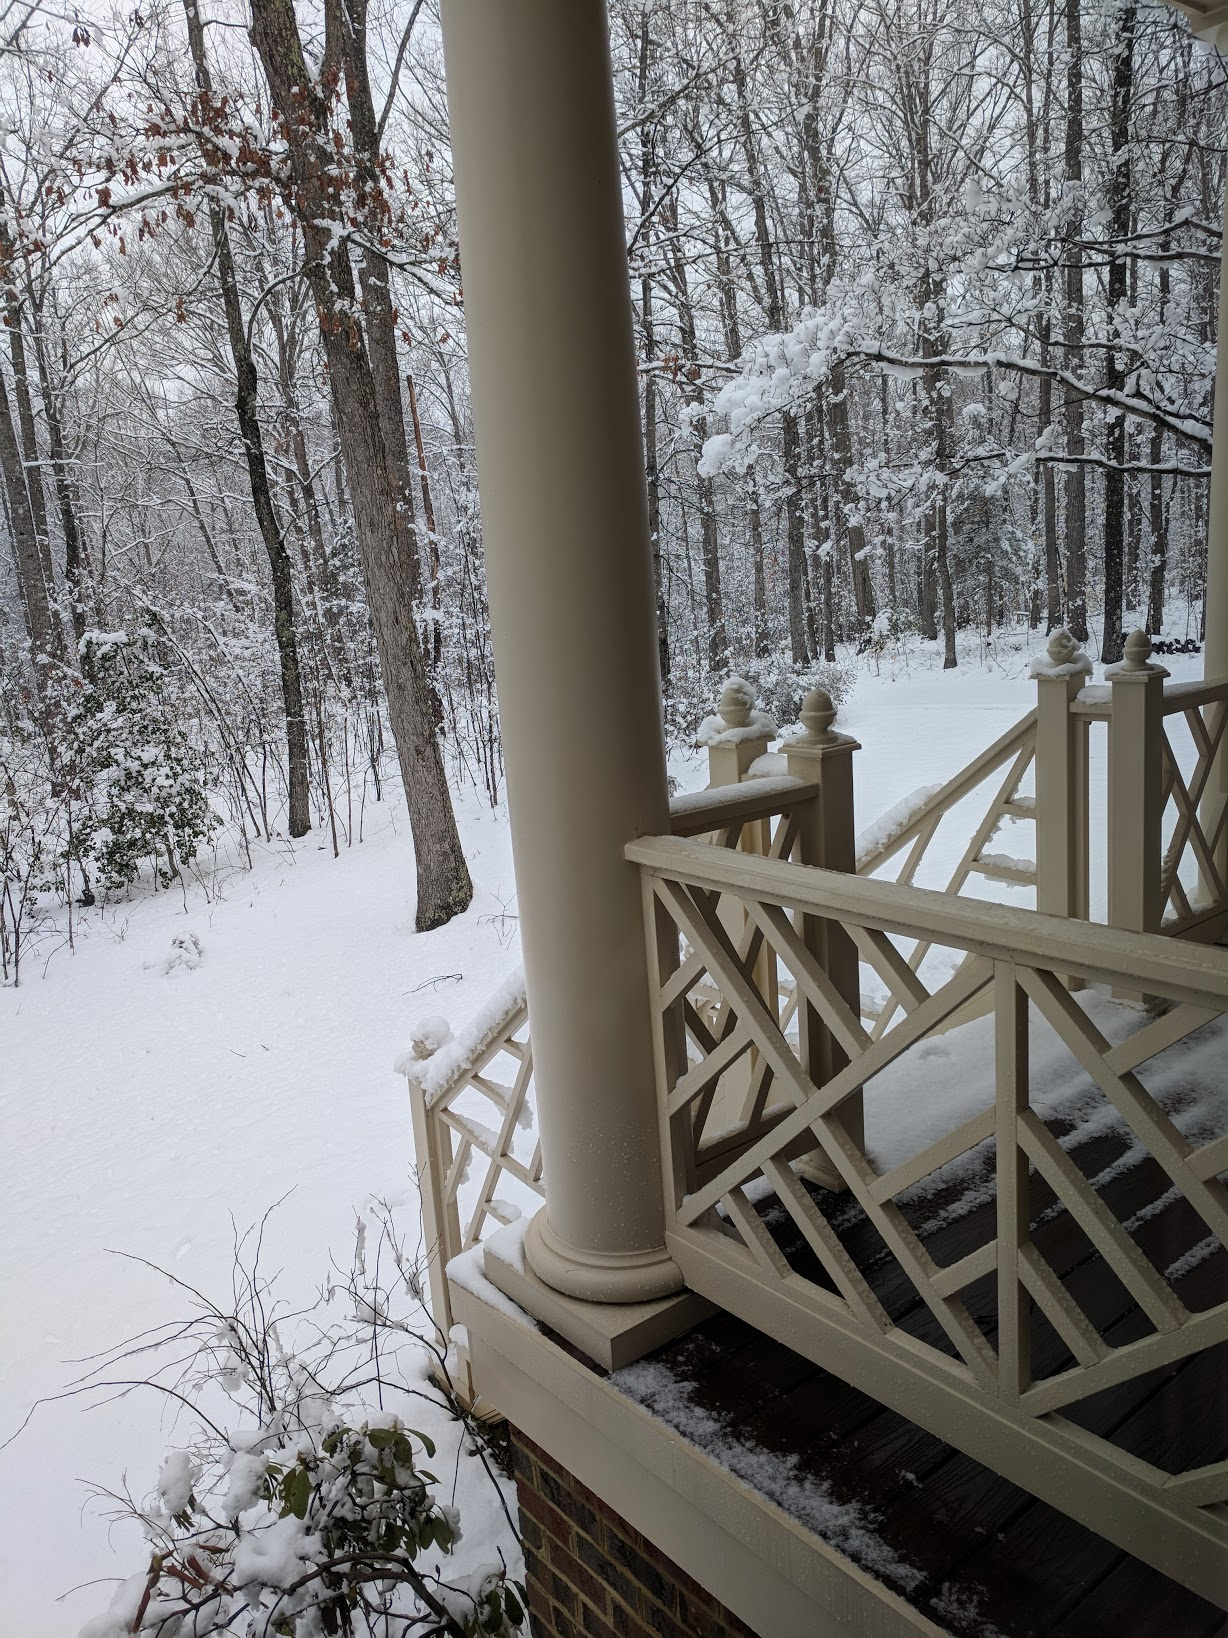 forest view from a snow-covered porch